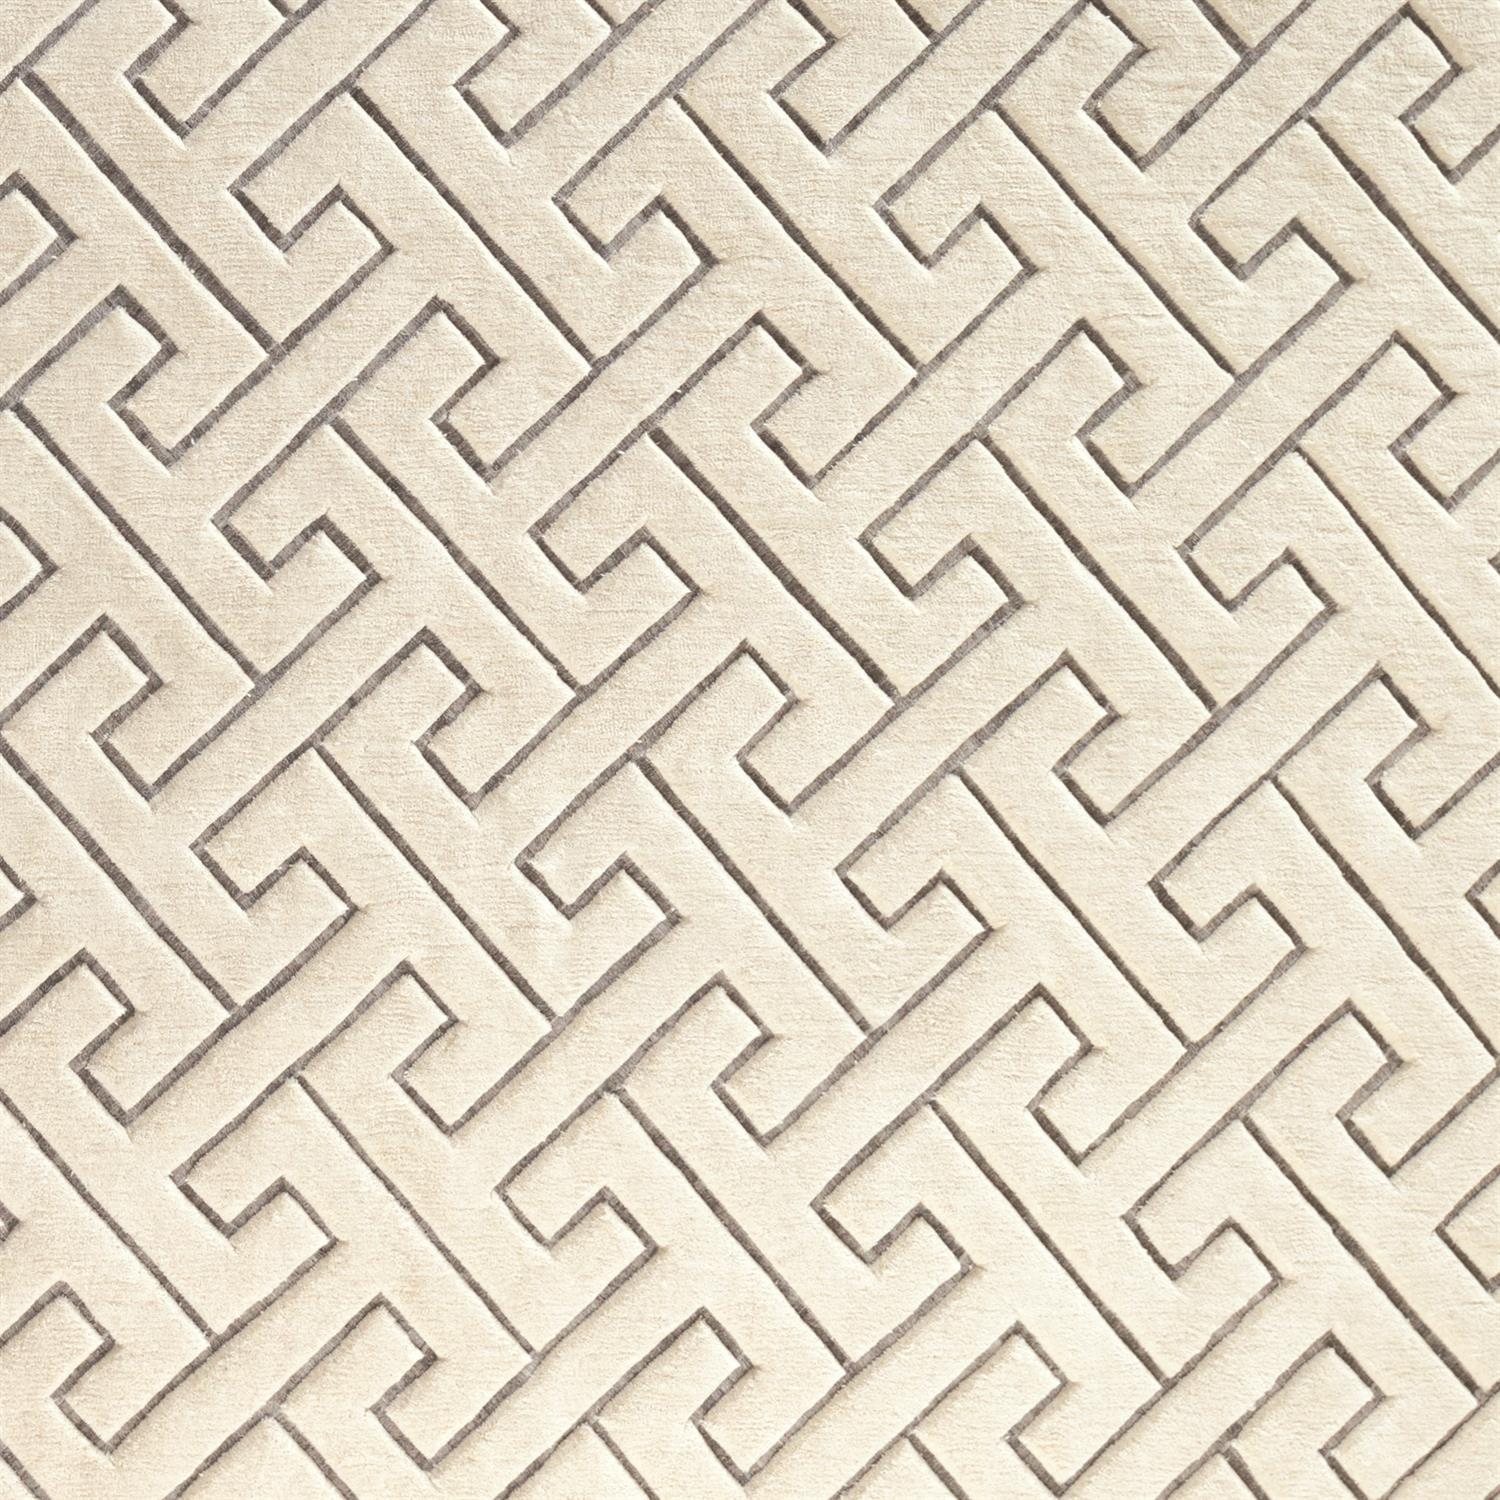 Global Views Tessellating Rug-Ivory/Grey-8' x 10'